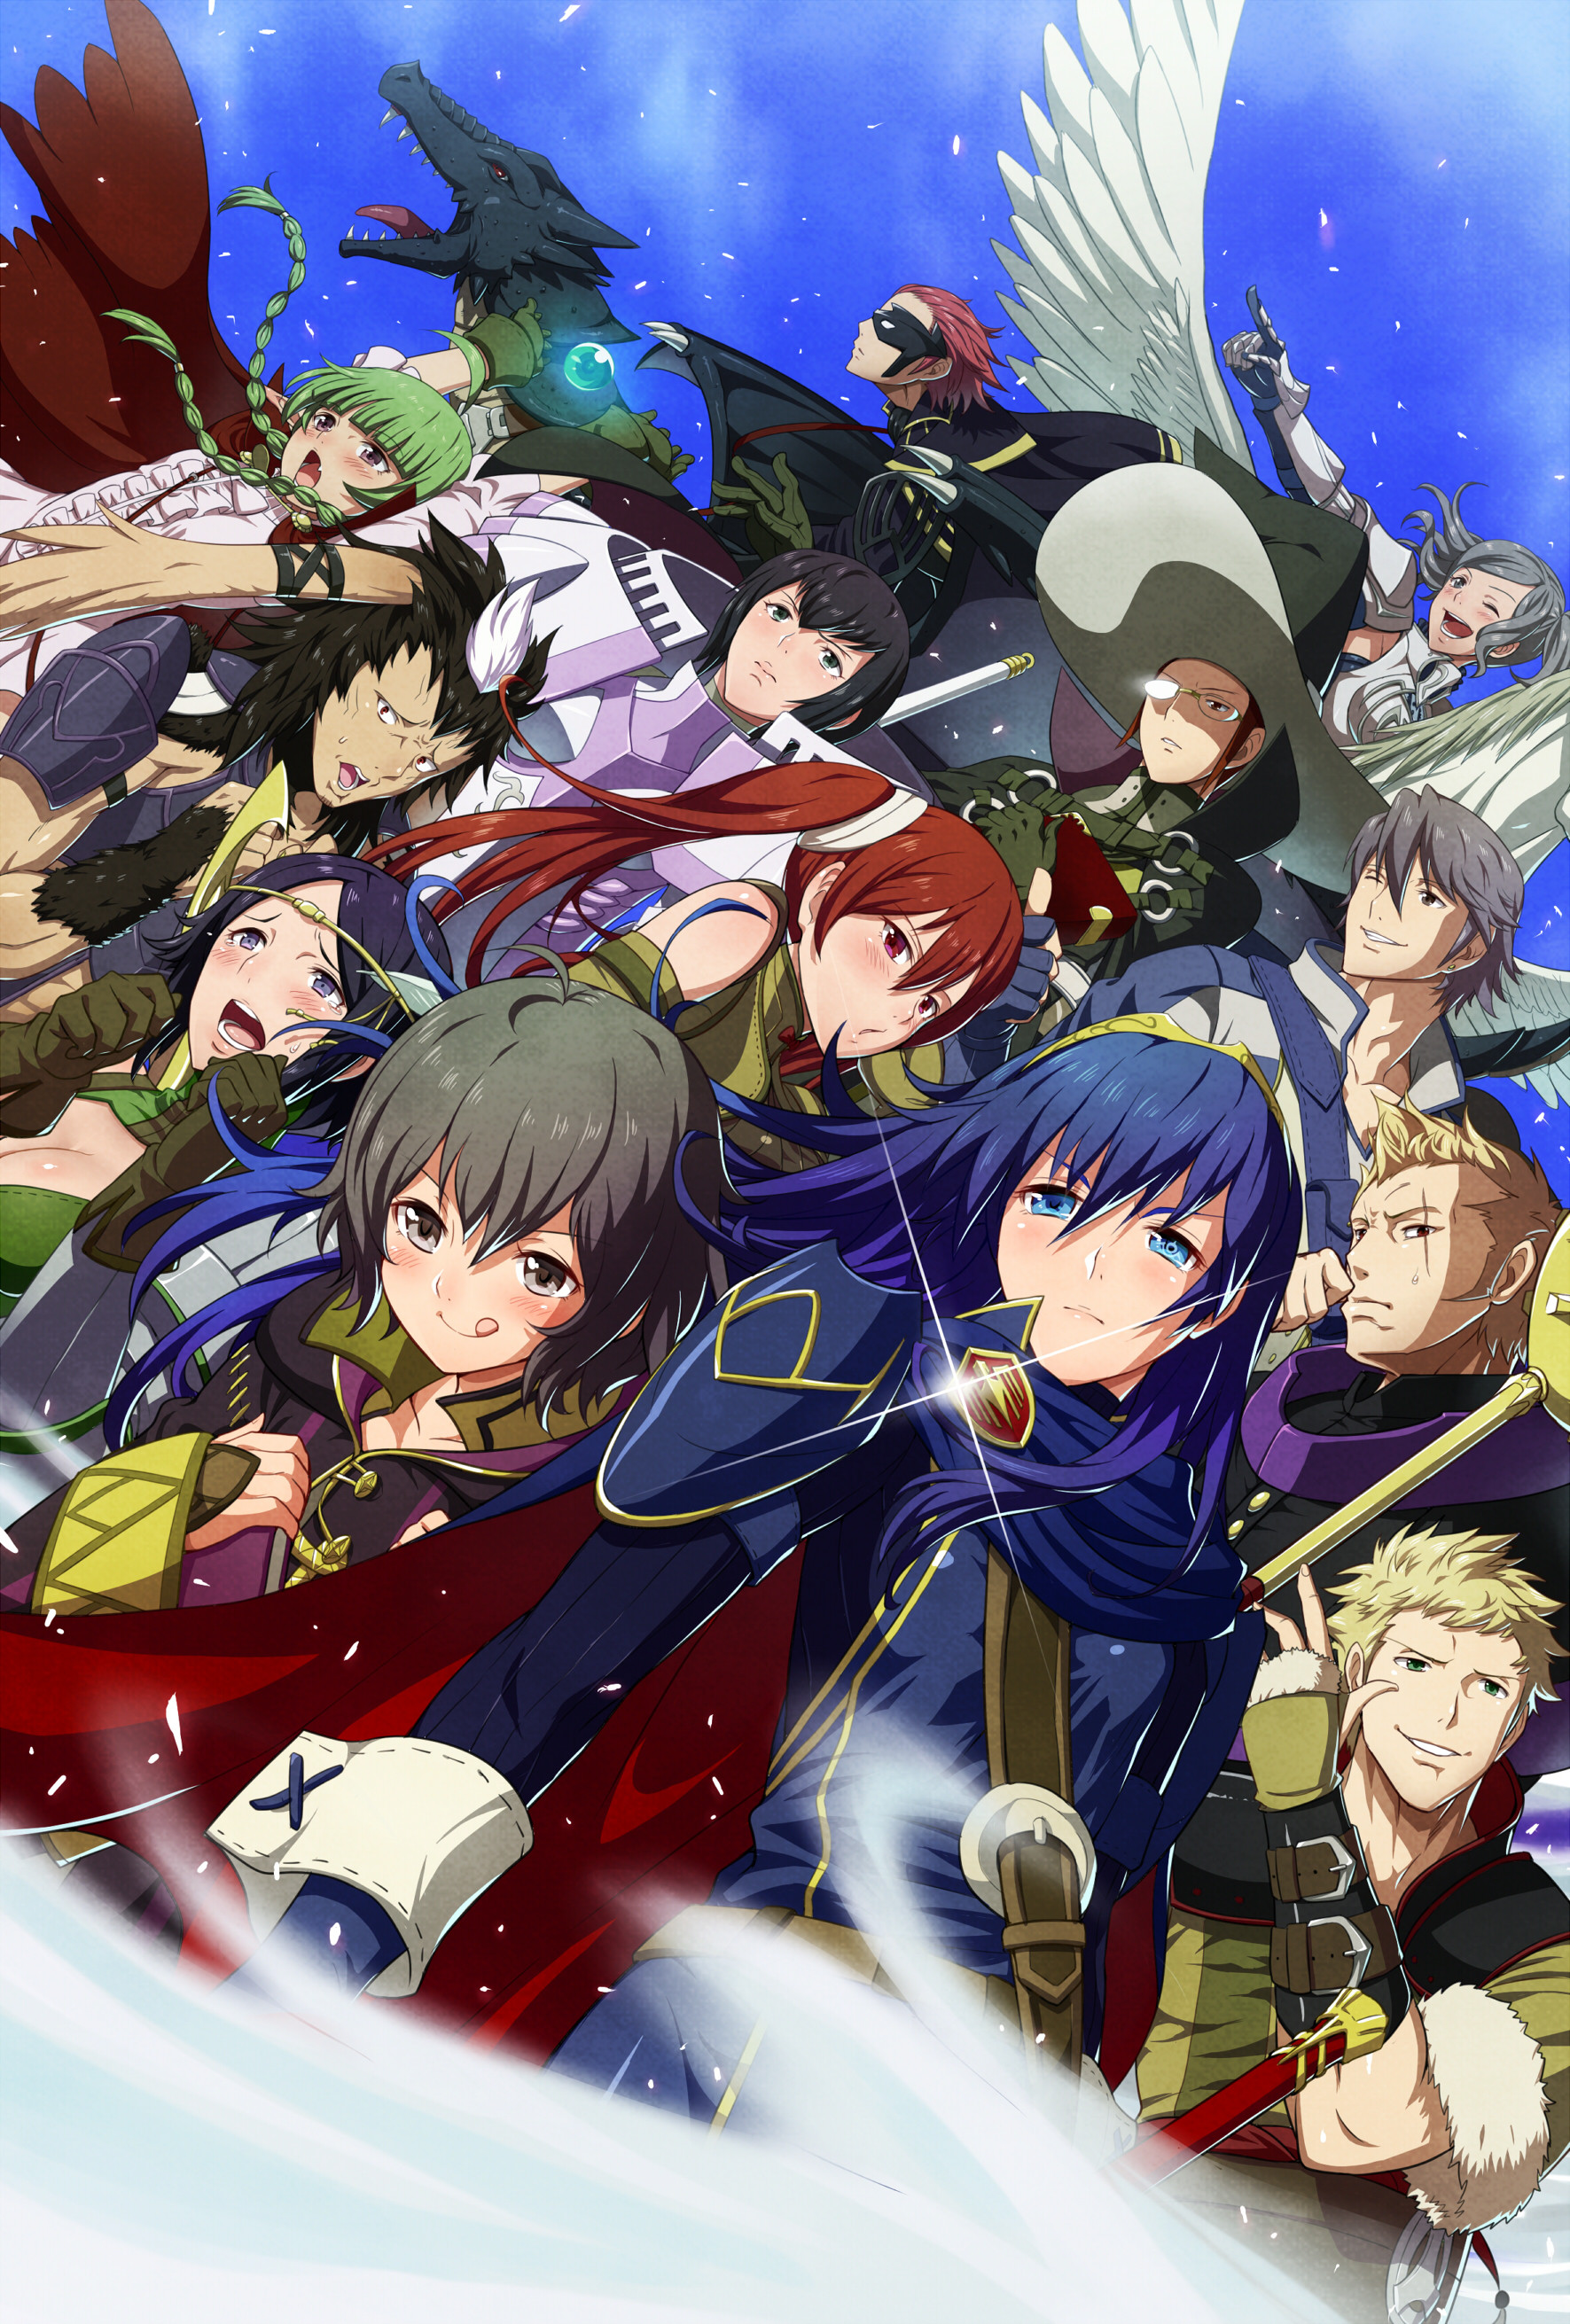 1771x2622 Fire Emblem: Awakening Children characters~ This looks so epic! I'm not